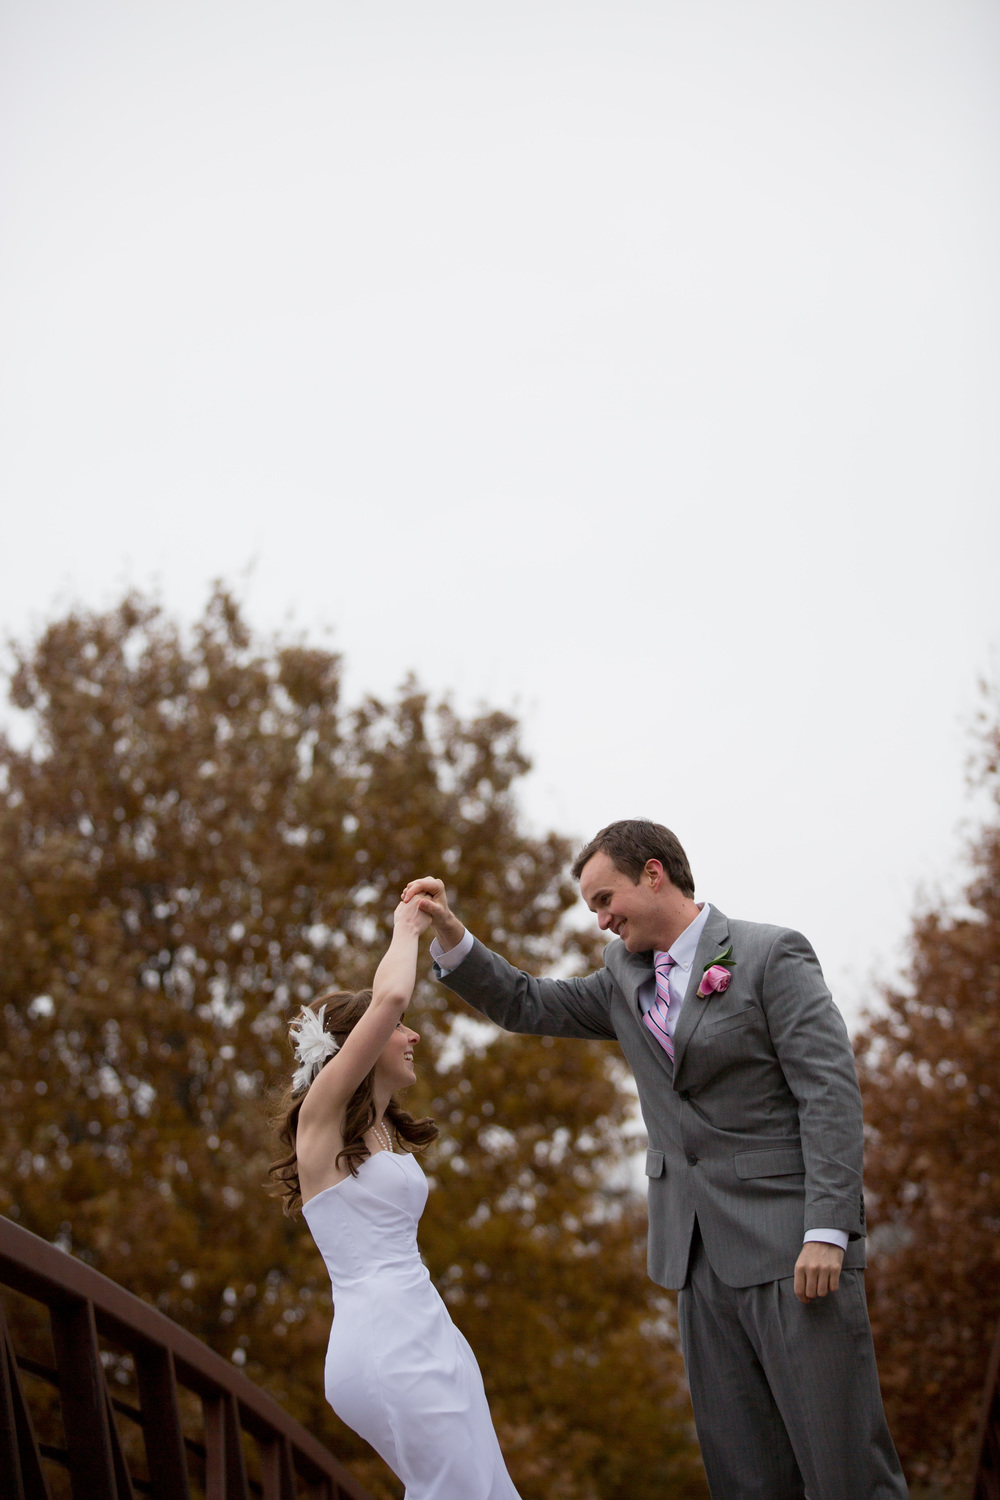 JessicaMcBroom_Komorebi_Weddings-338.jpg